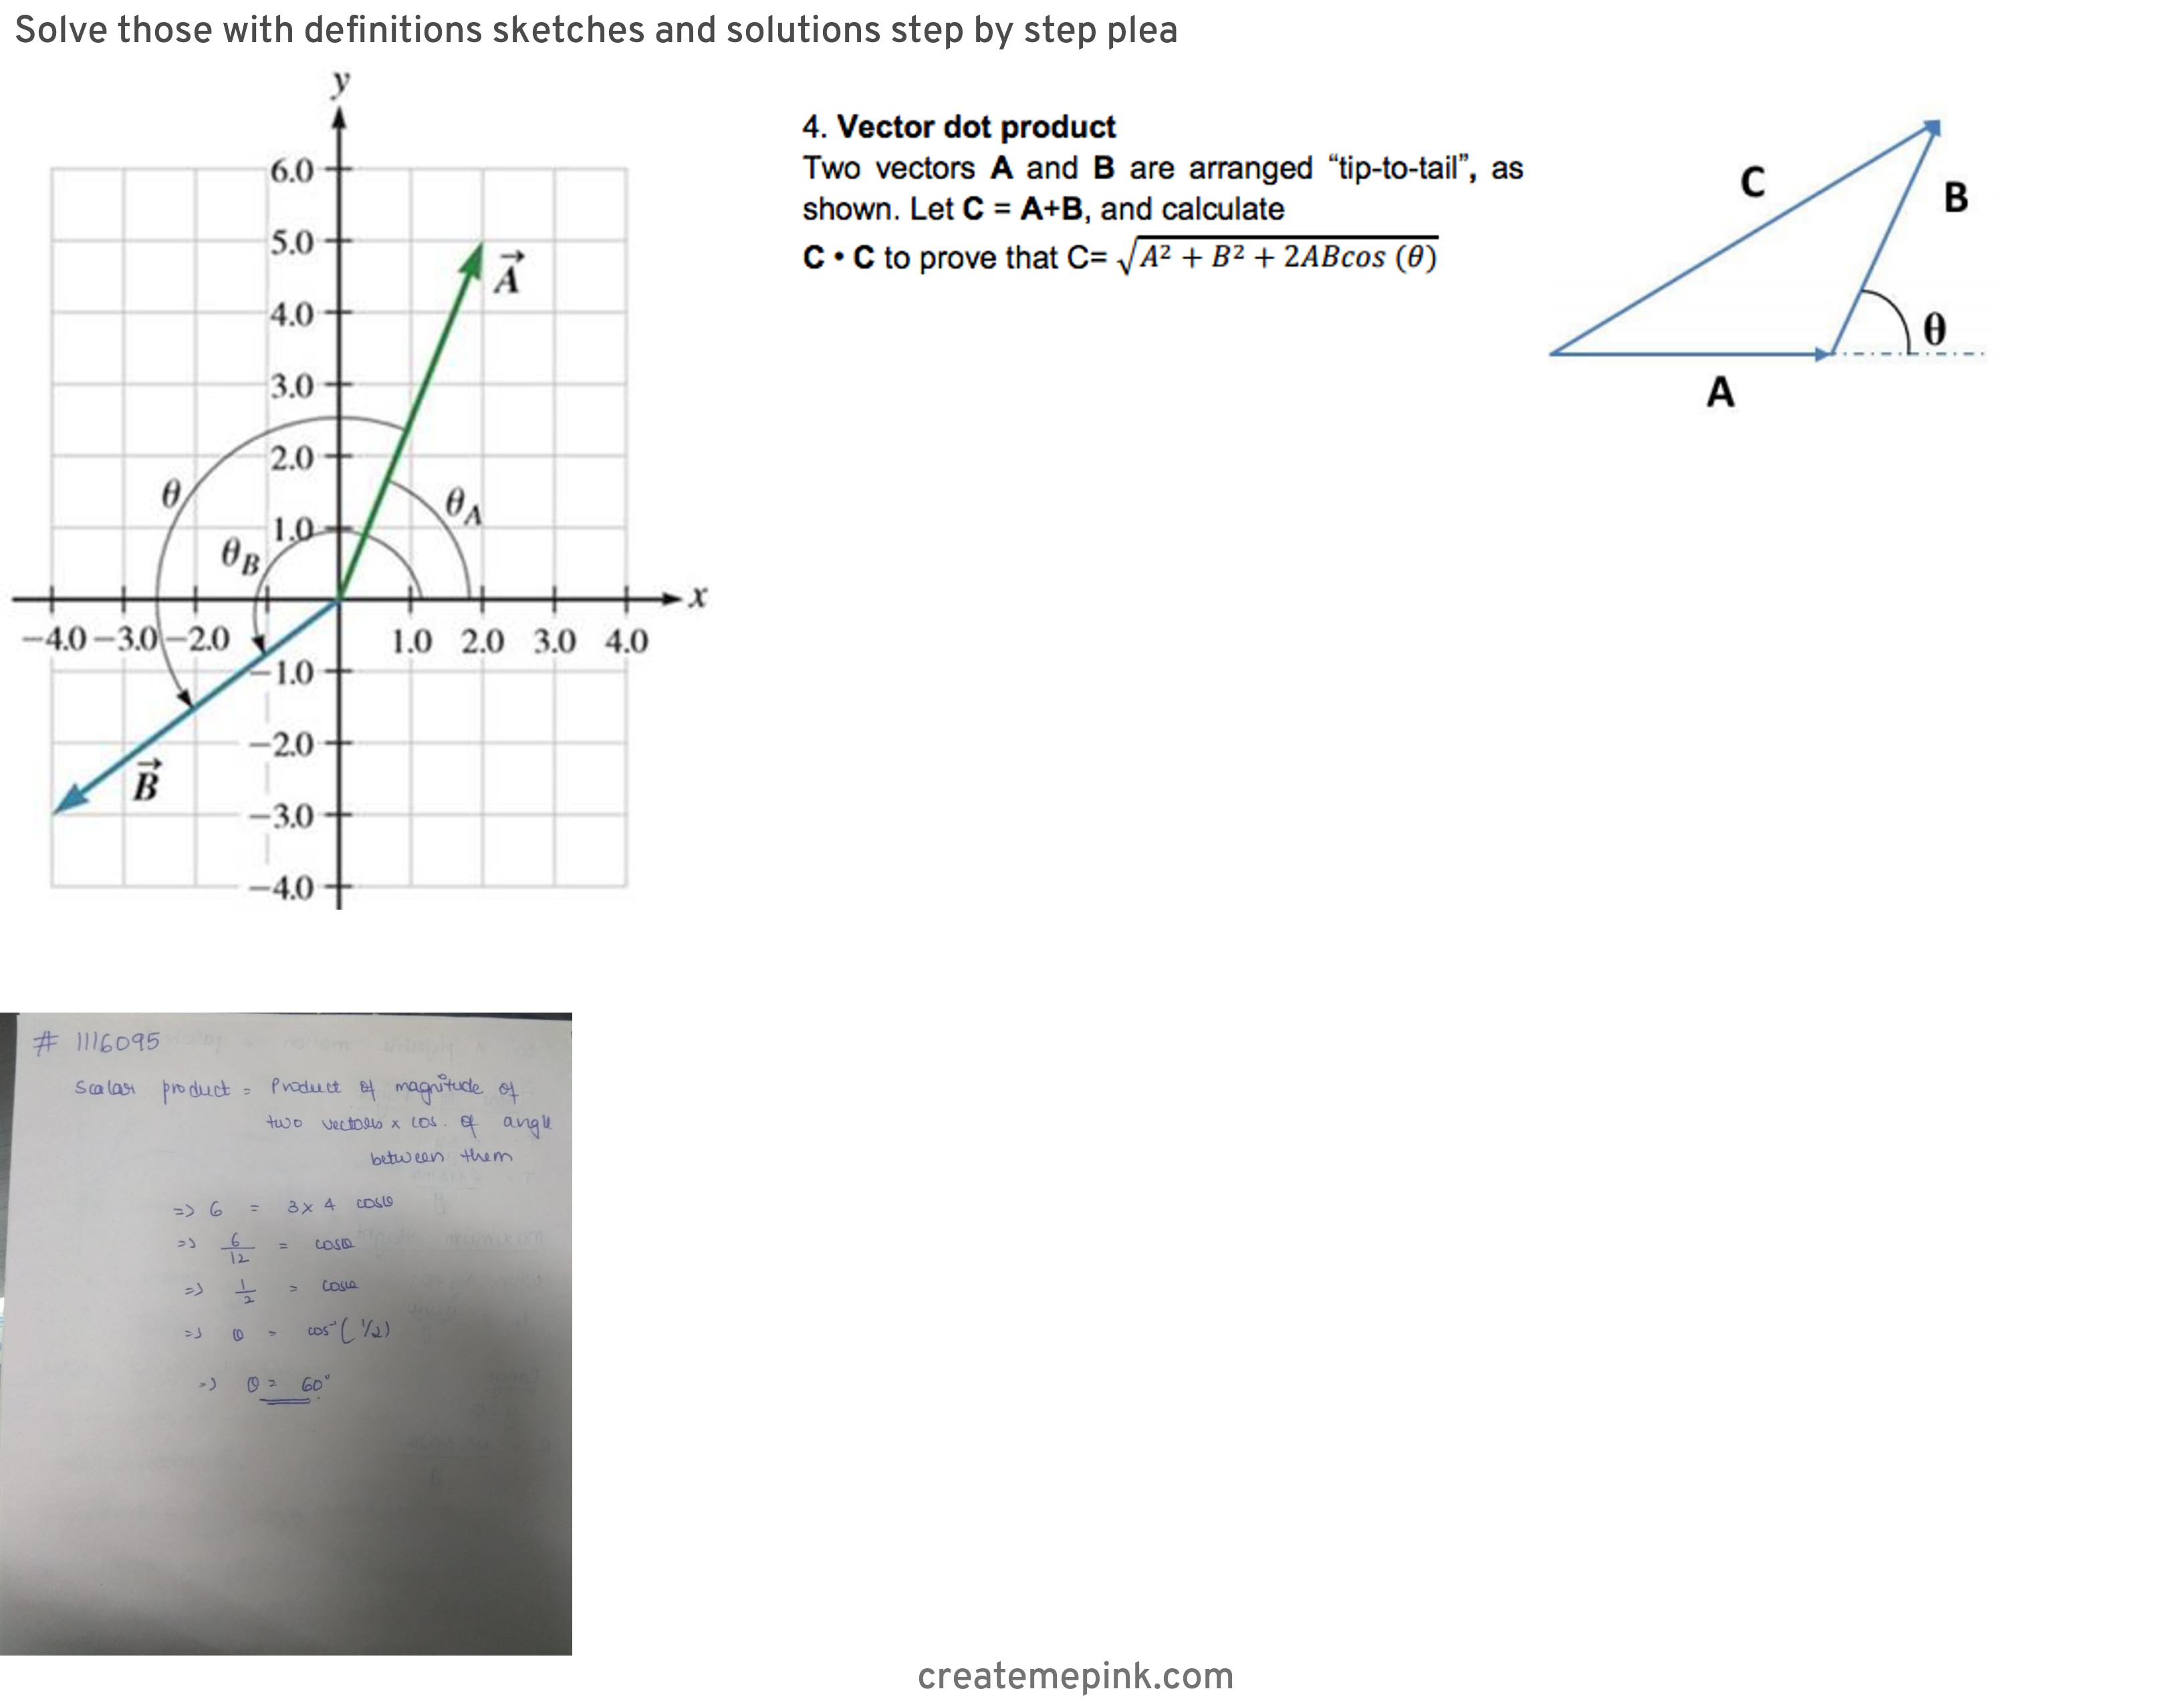 Dot Multiply Vectors: Solve Those With Definitions Sketches And Solutions Step By Step Plea